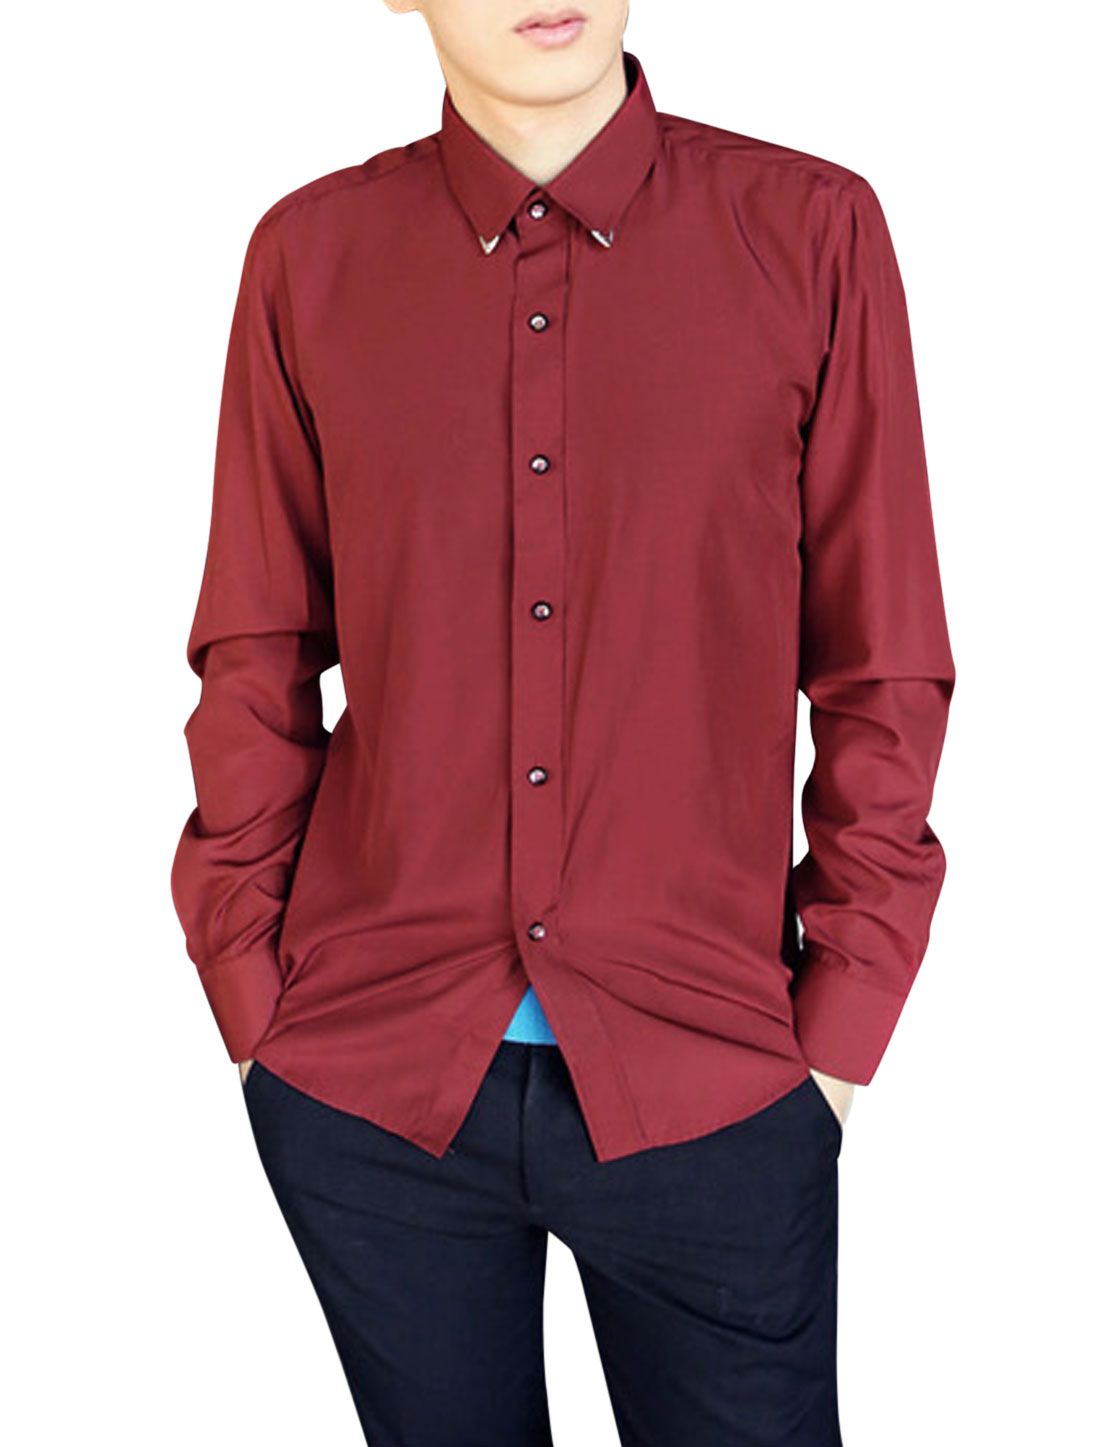 Cozy Fit Stylish Point Collar Single Breasted Shirt for Men Burgundy M